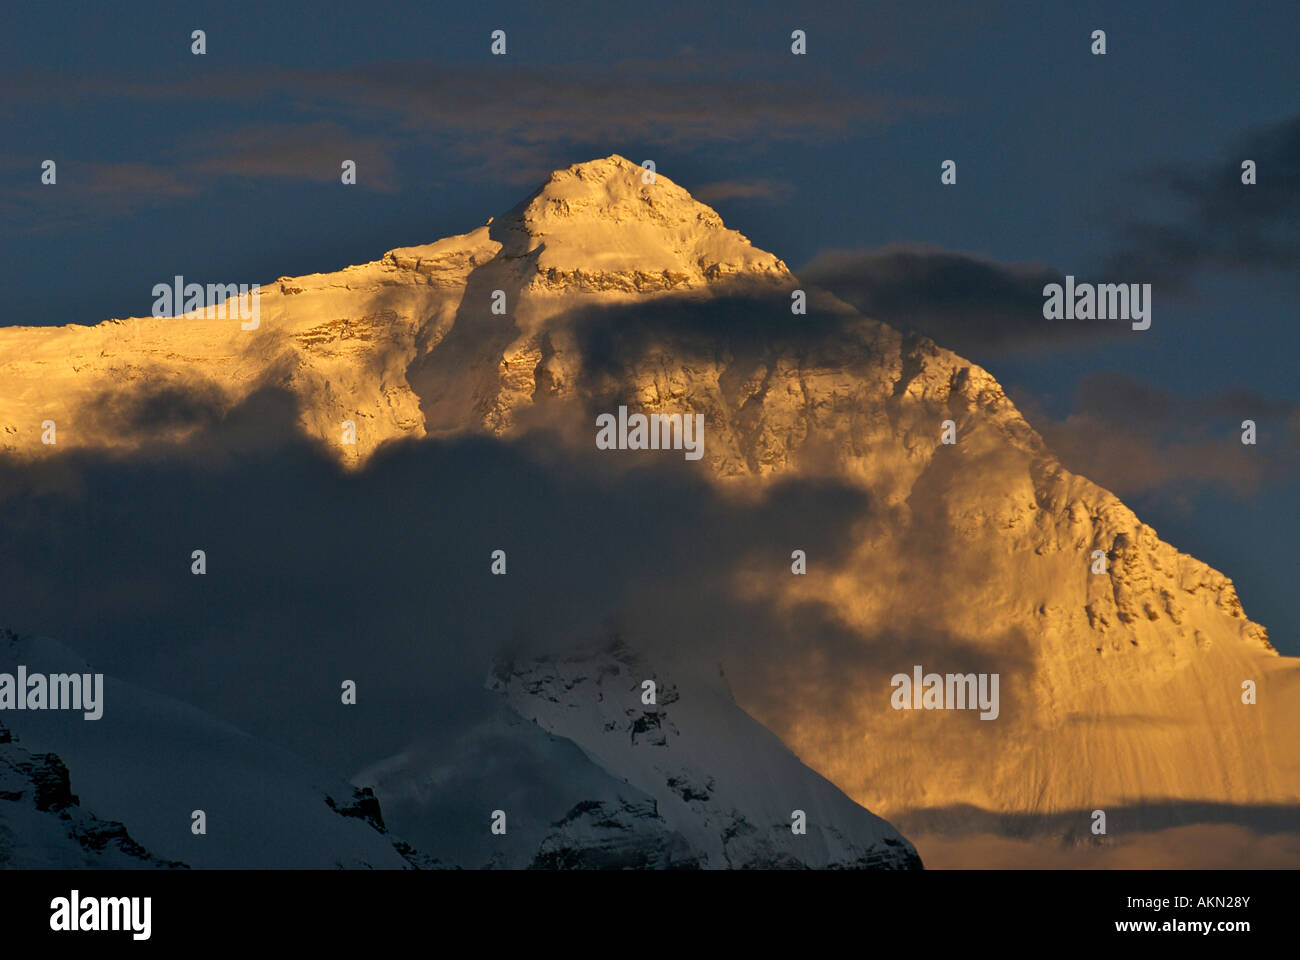 Mount Everest at sunset viewed from Base Camp Tibet - Stock Image